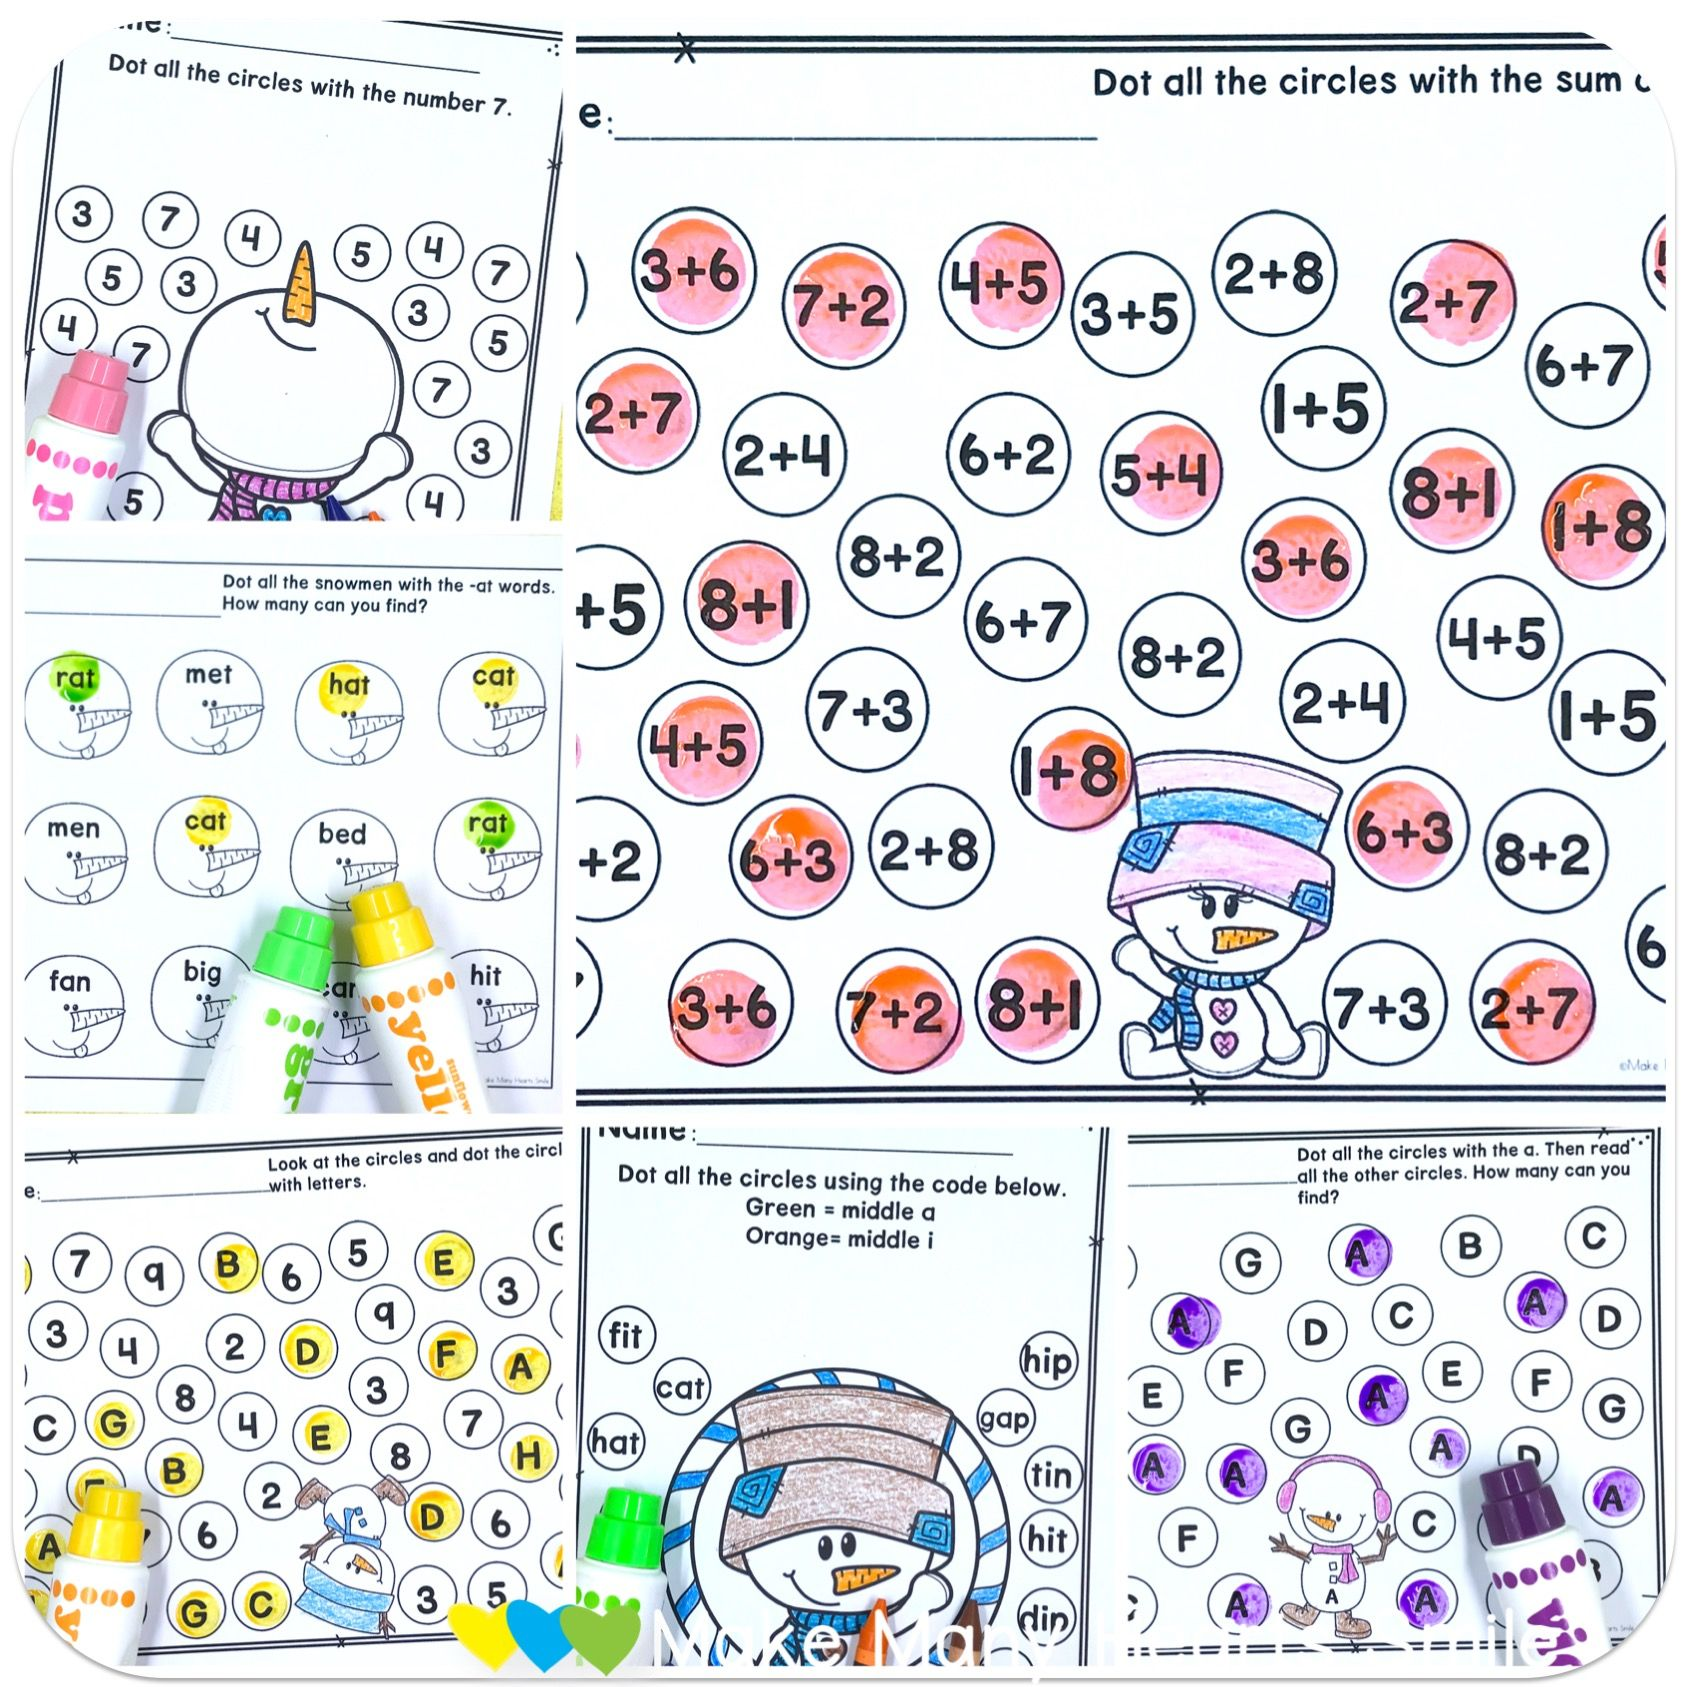 Fun Editable Snowman Worksheets For Sight Words Addition